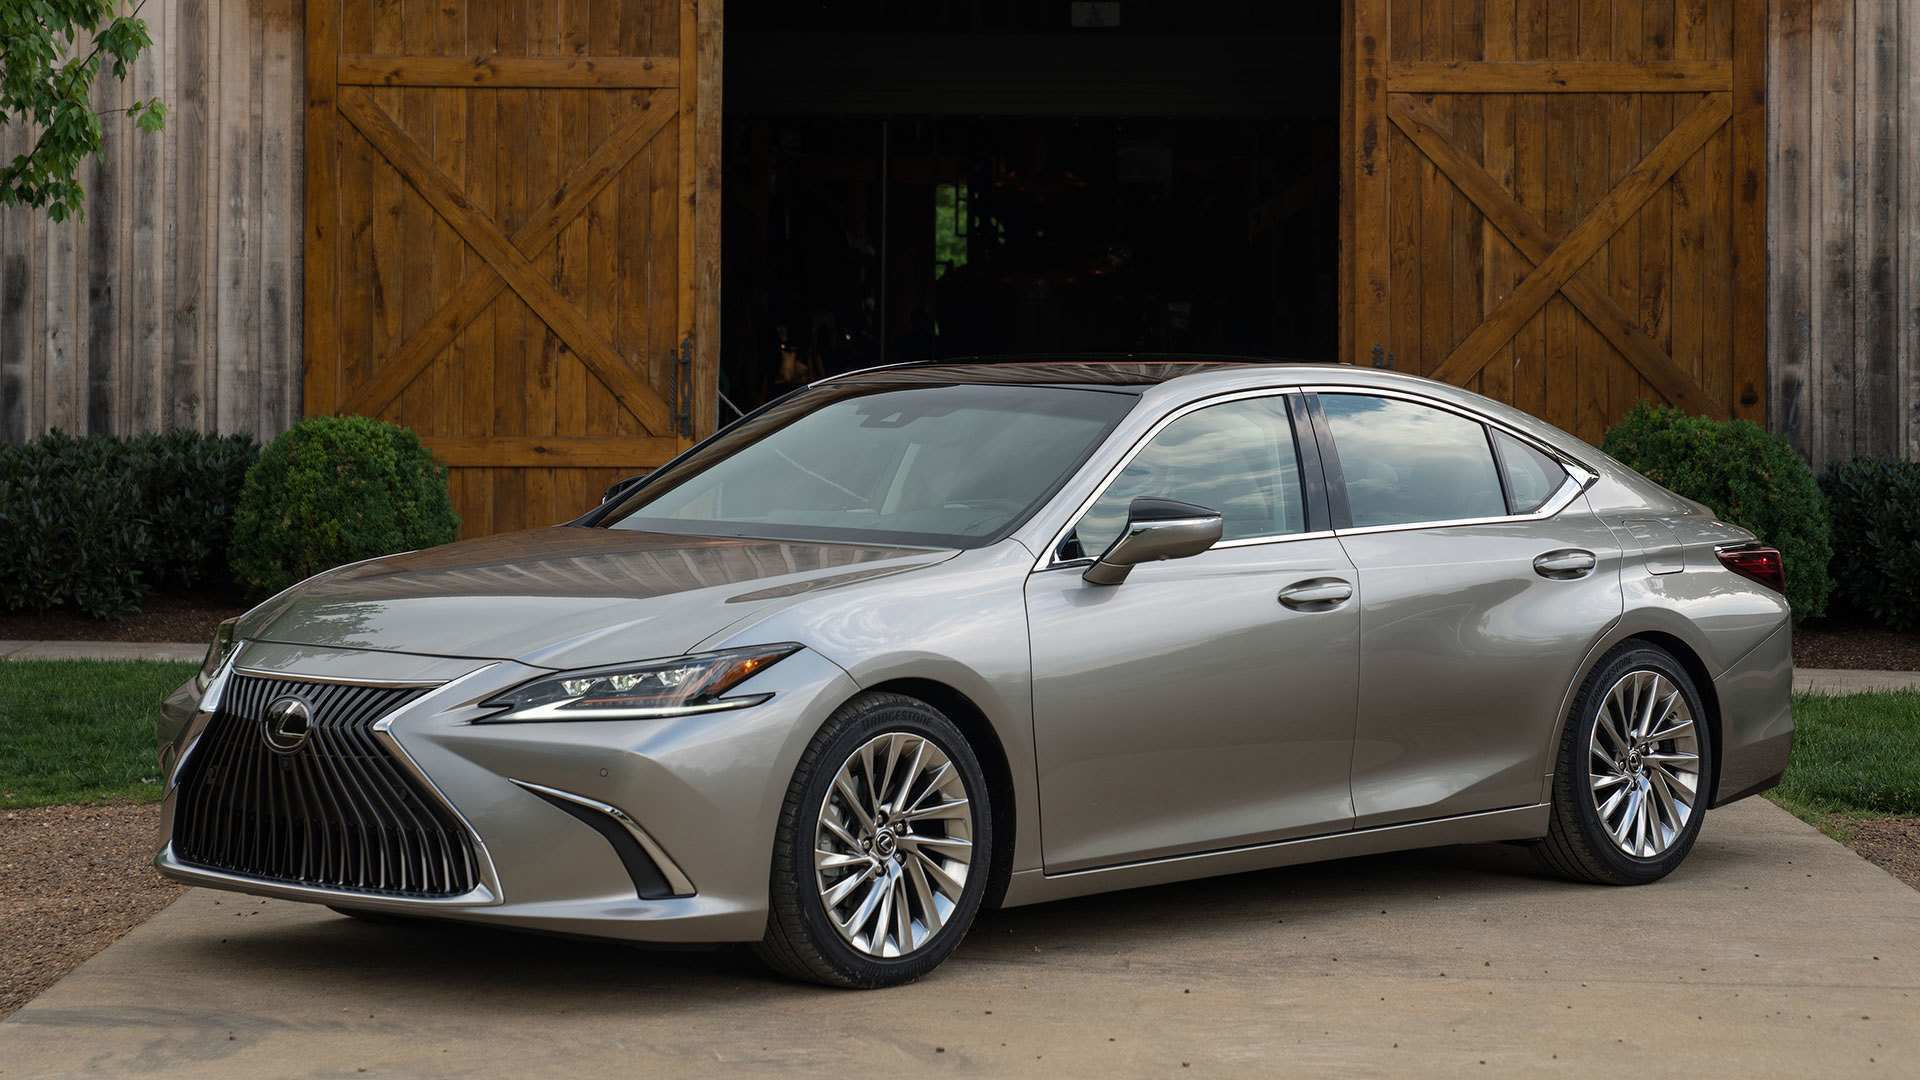 19 Great When Do 2019 Lexus Come Out Review for When Do 2019 Lexus Come Out